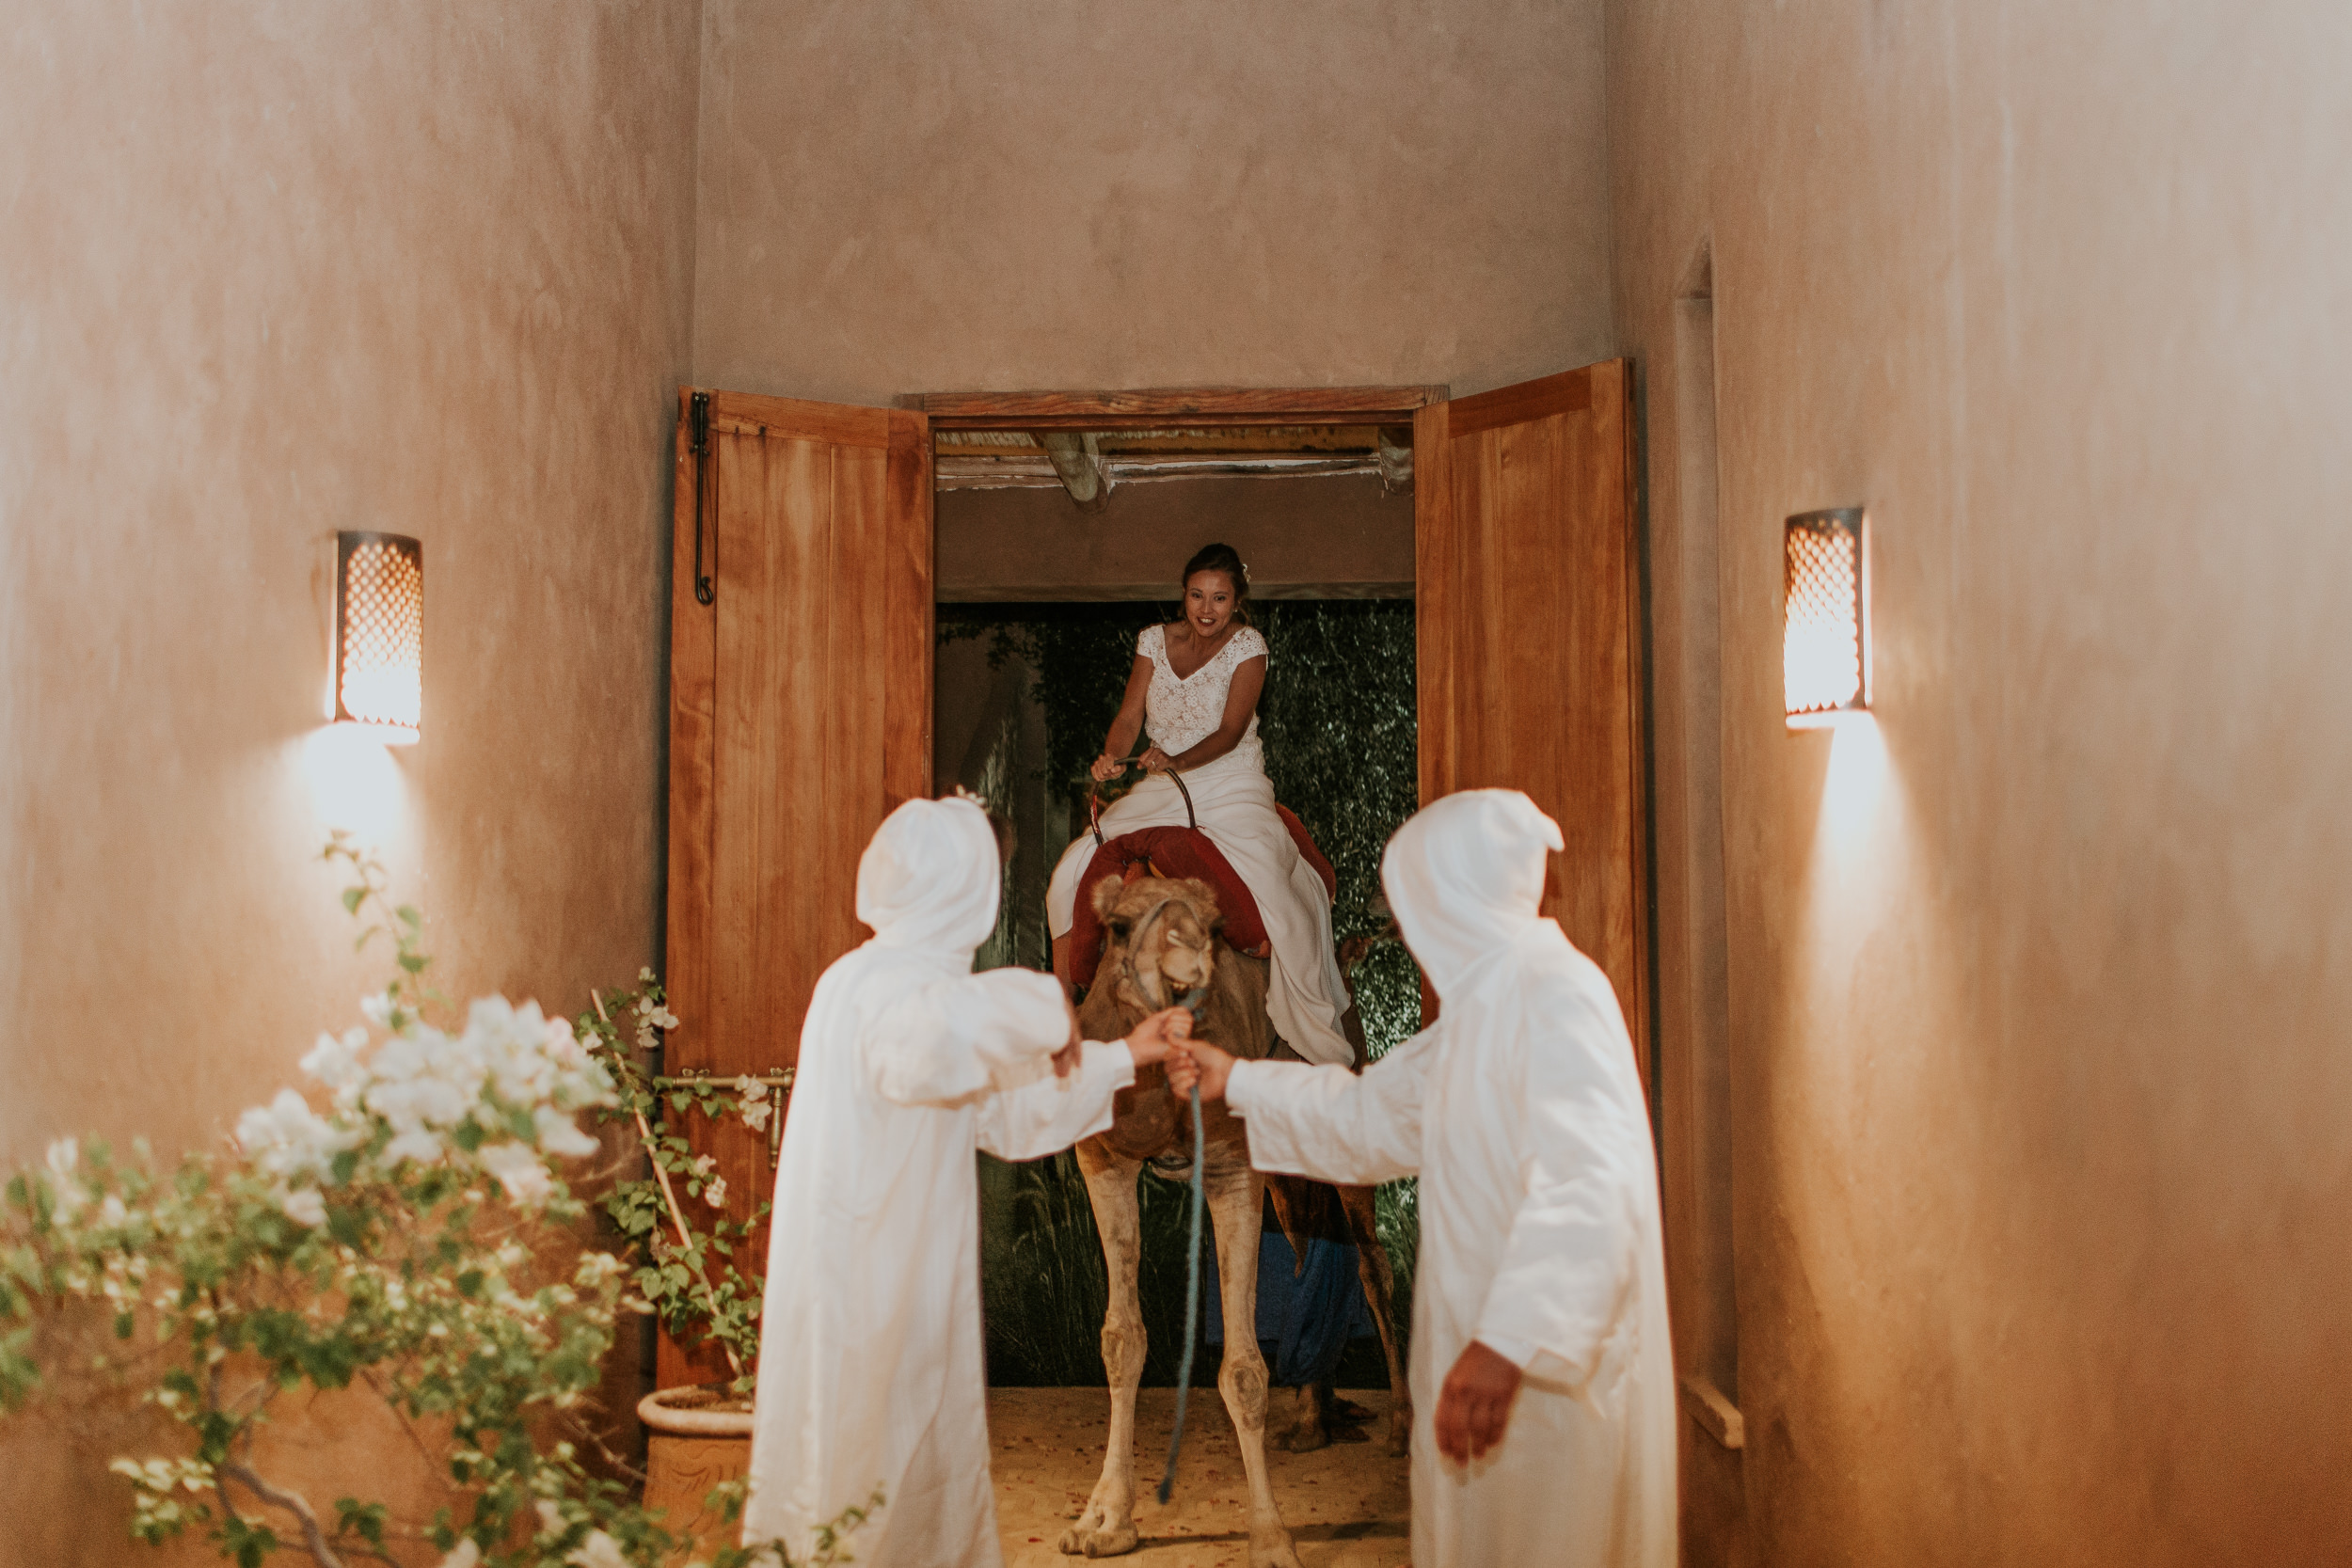 morganedimitri_davidmaire_marrakech_destinationwedding-252.jpg